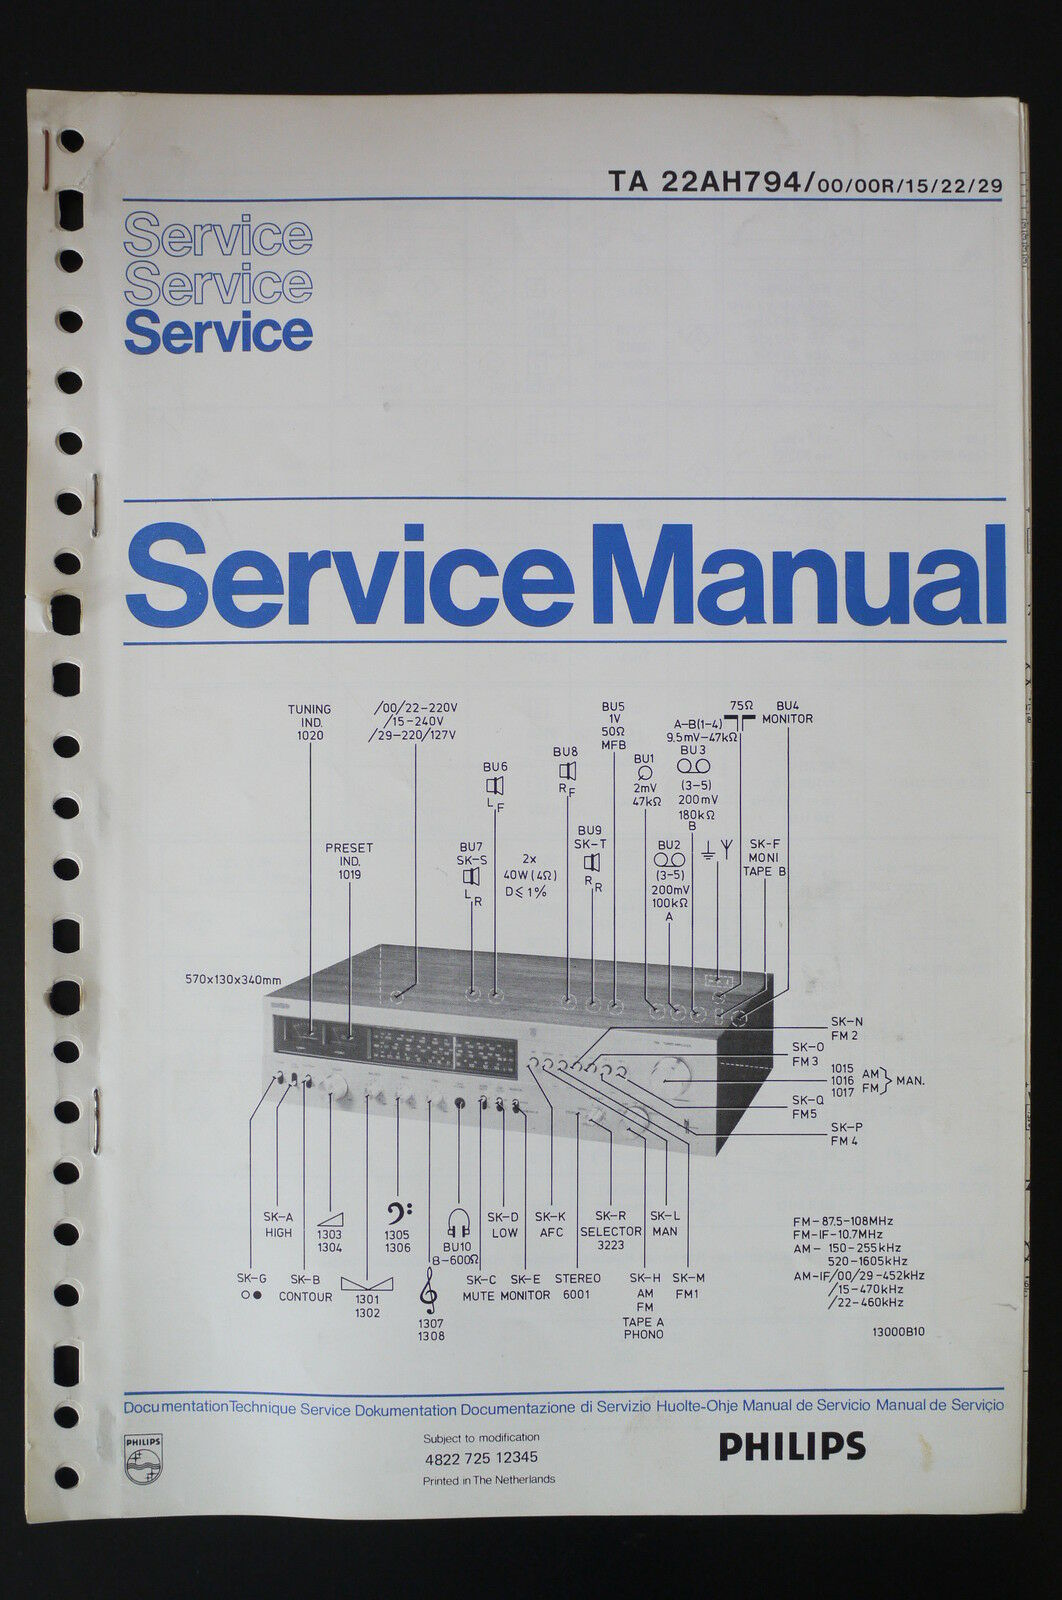 Philips Ta 22ah794 Amplifier Original Service Manual Wiring A Diagram 1 Of See More